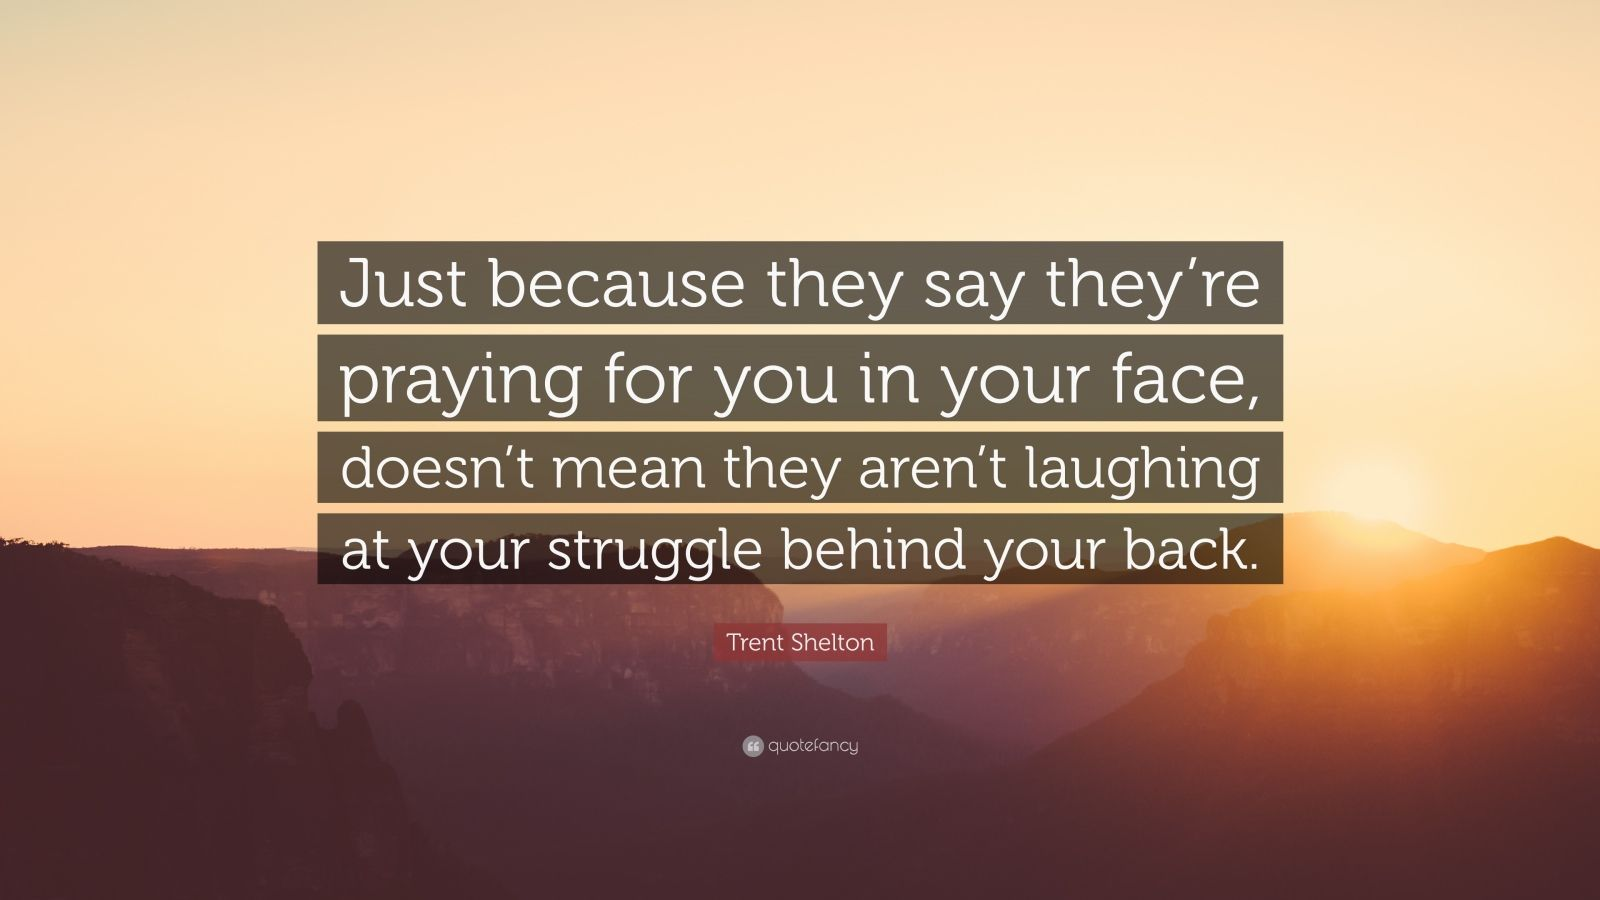 """Trent Shelton Quote: """"Just because they say they're praying for you in your face, doesn't mean they aren't laughing at your struggle behind your back."""""""